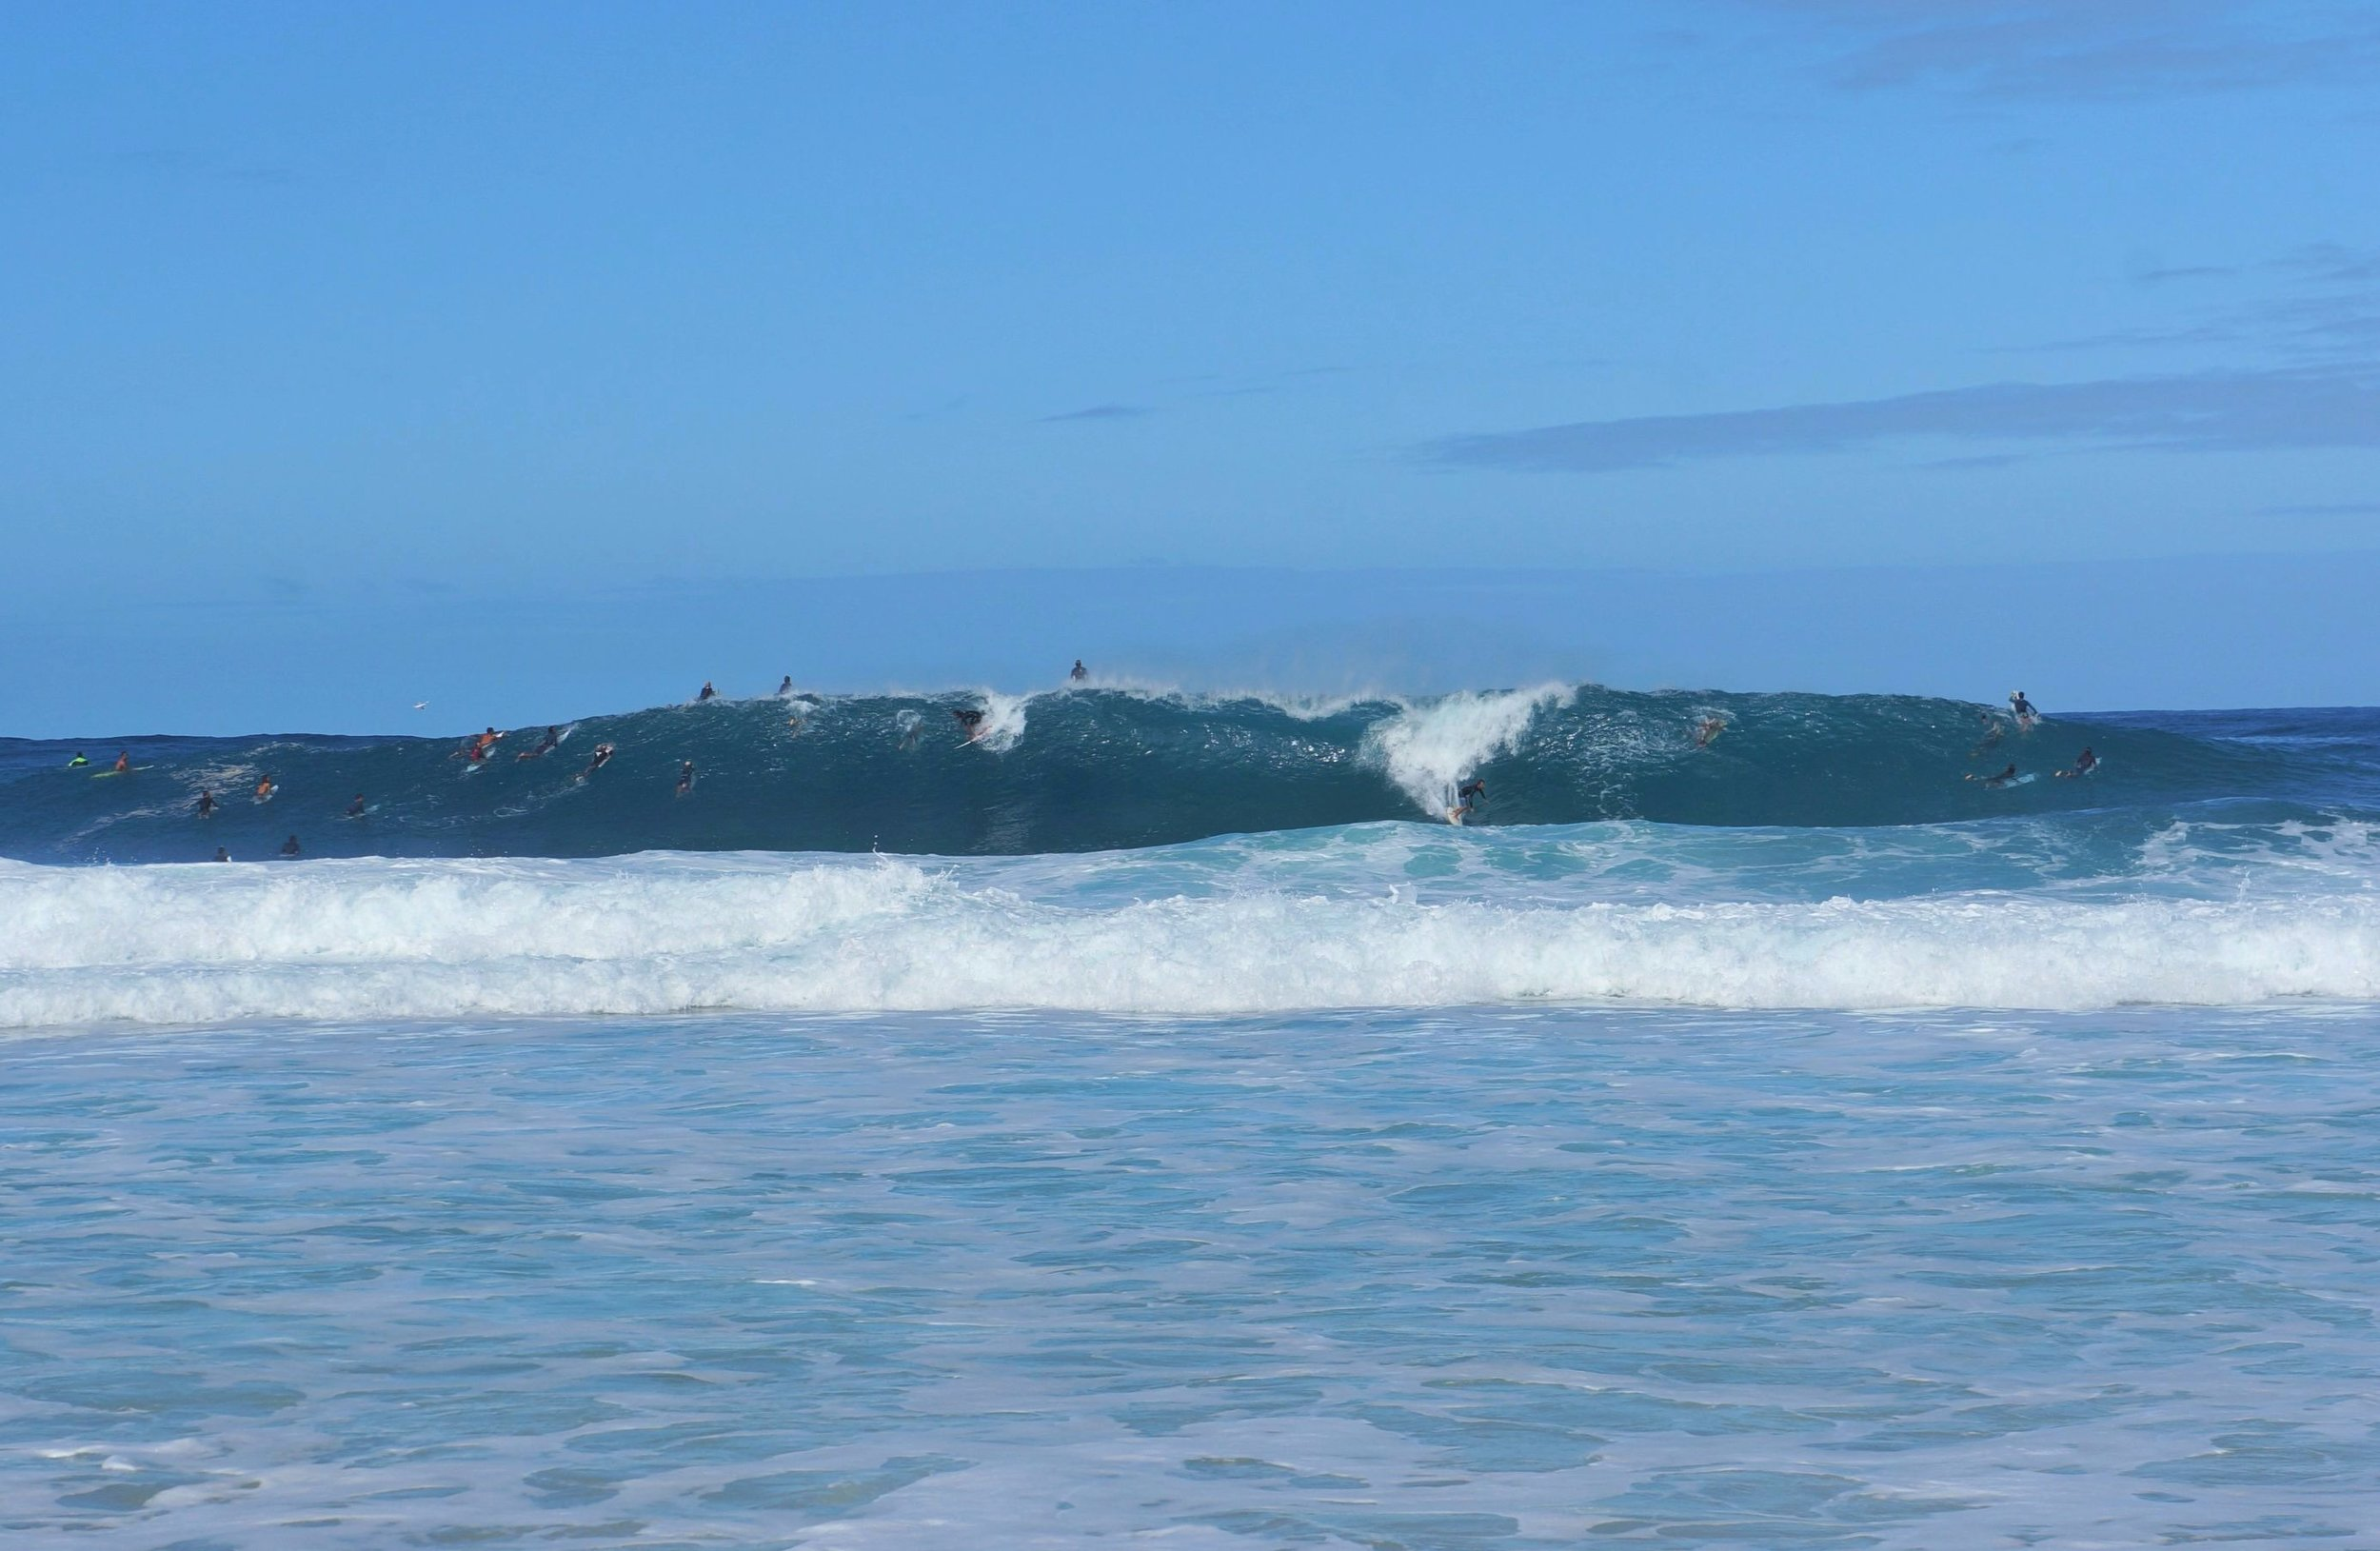 More surfers!